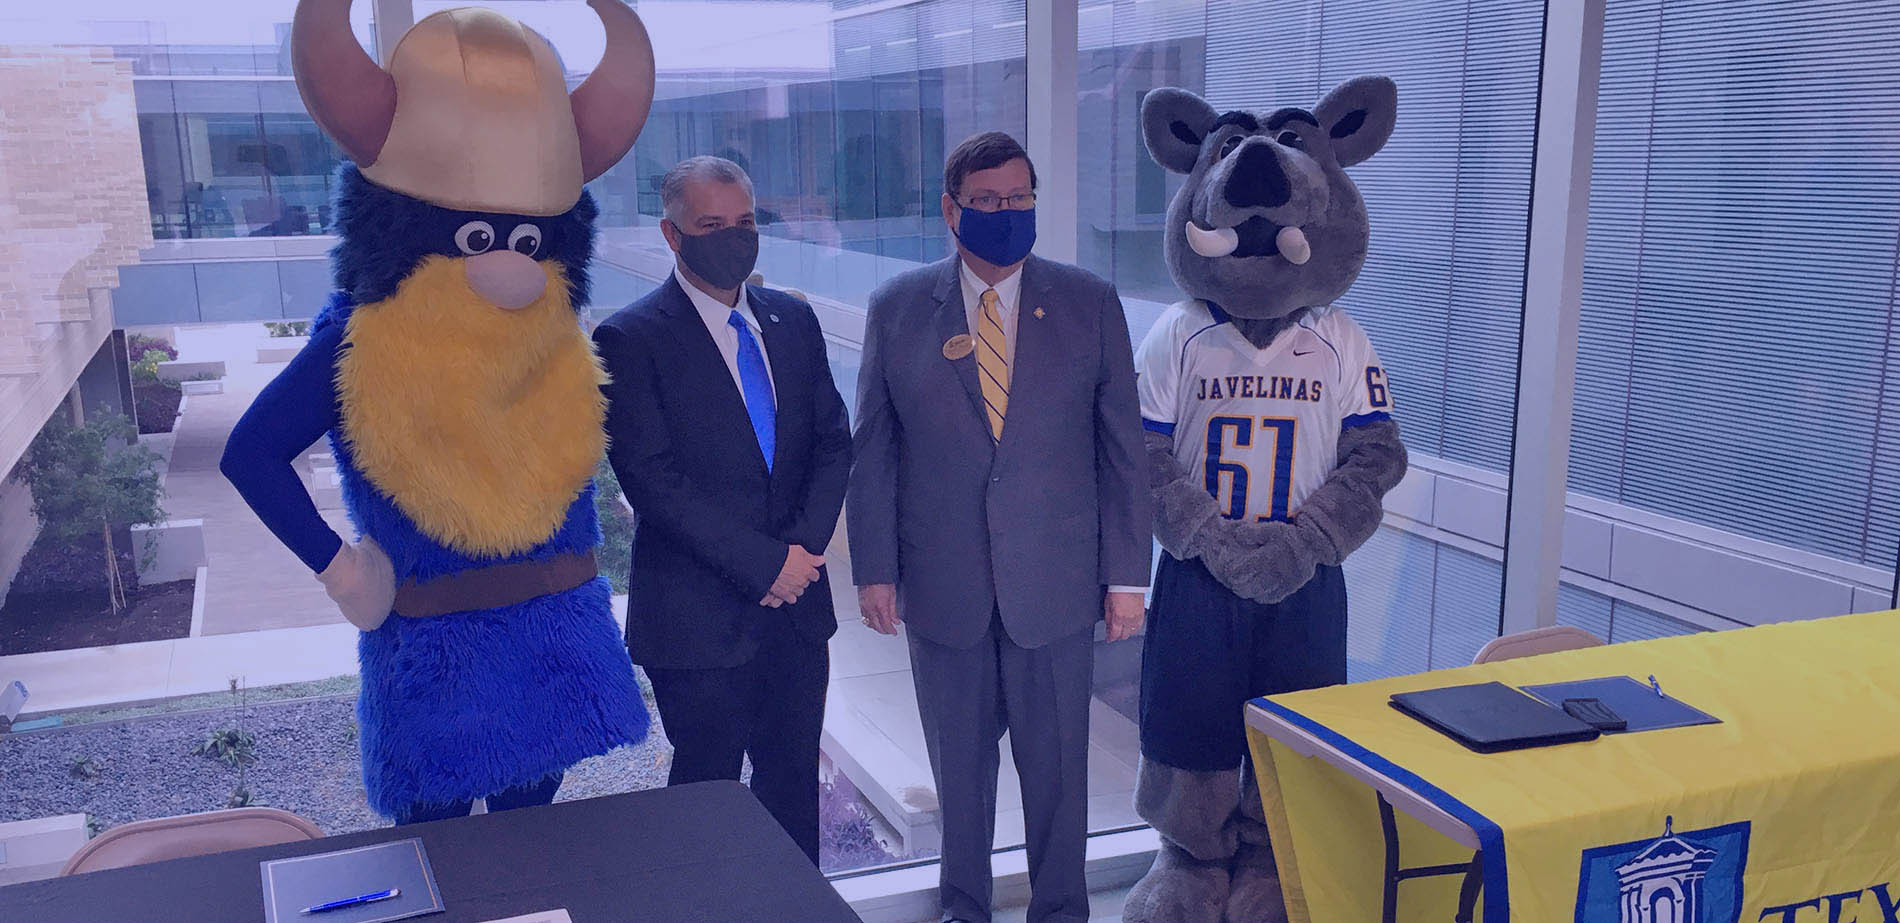 TAMUK and DMC presidents with their school mascots